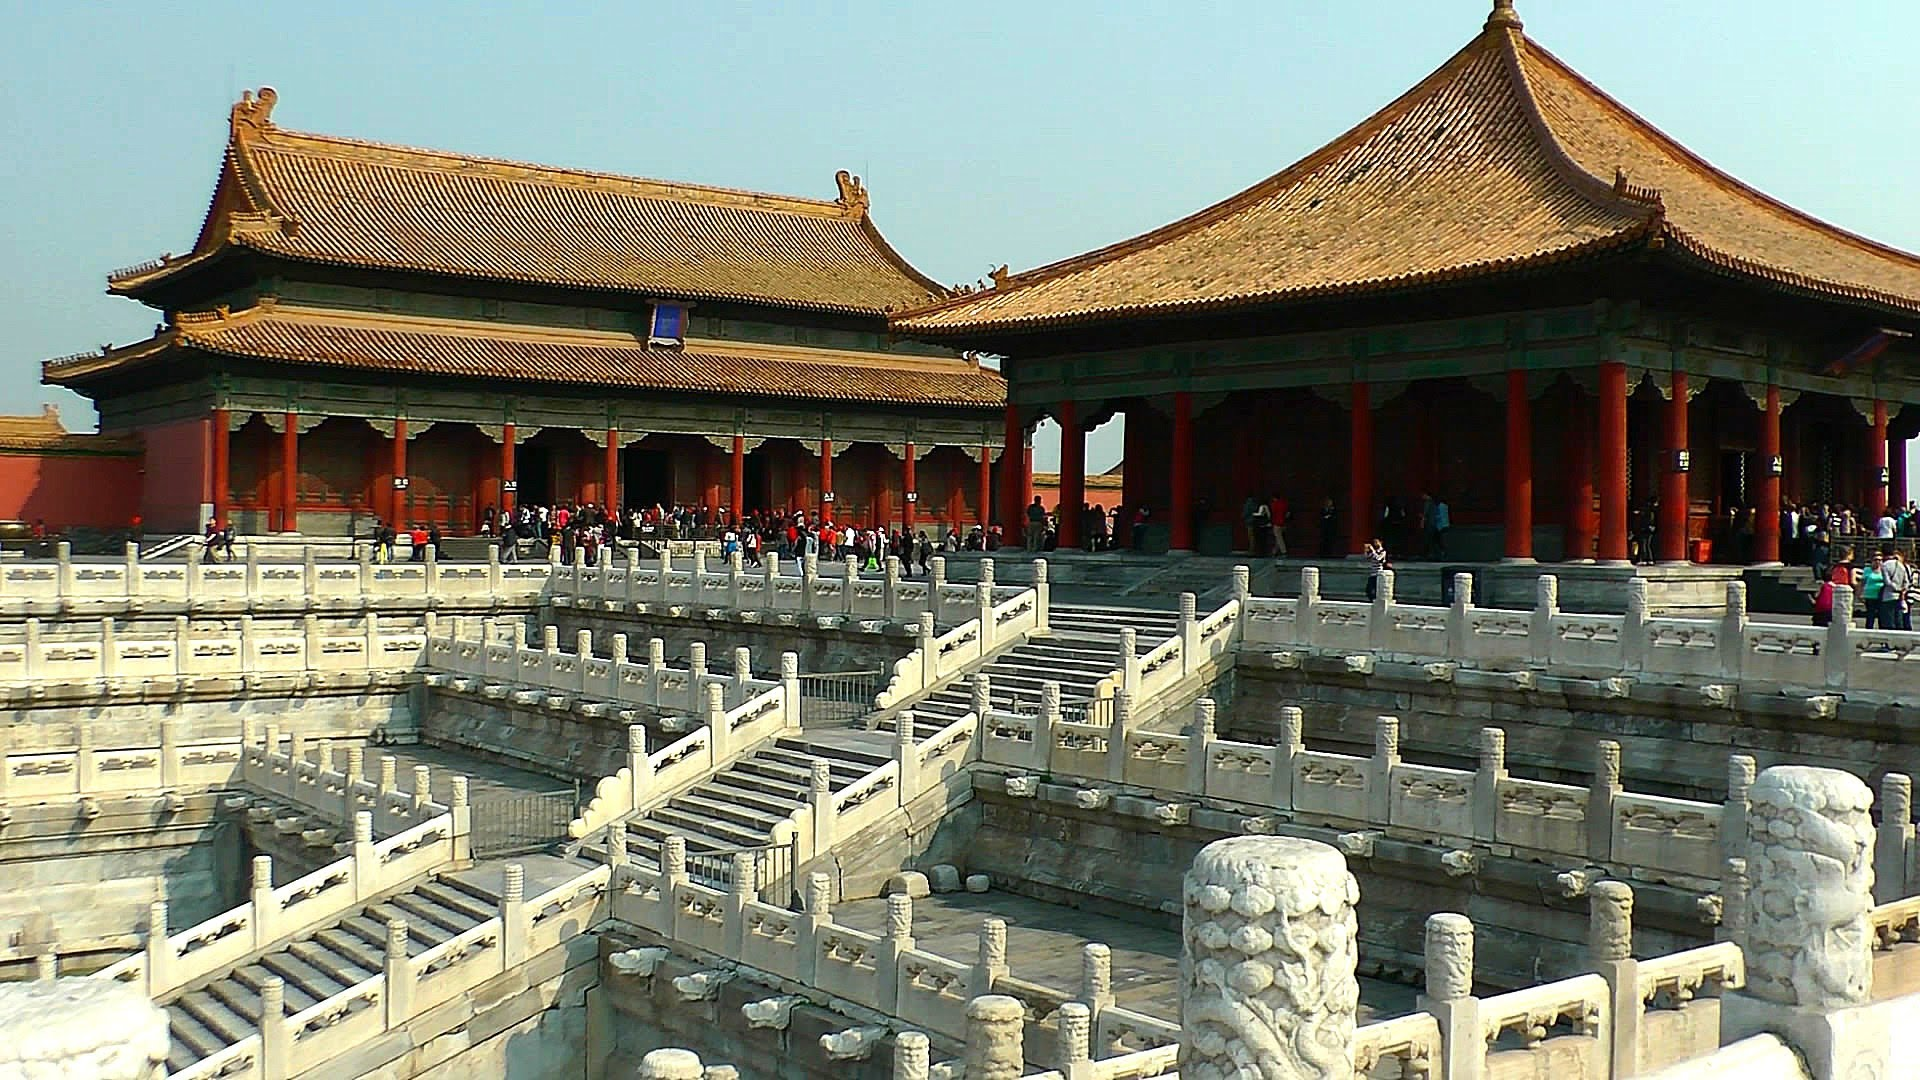 HQ Forbidden City Wallpapers | File 399.43Kb